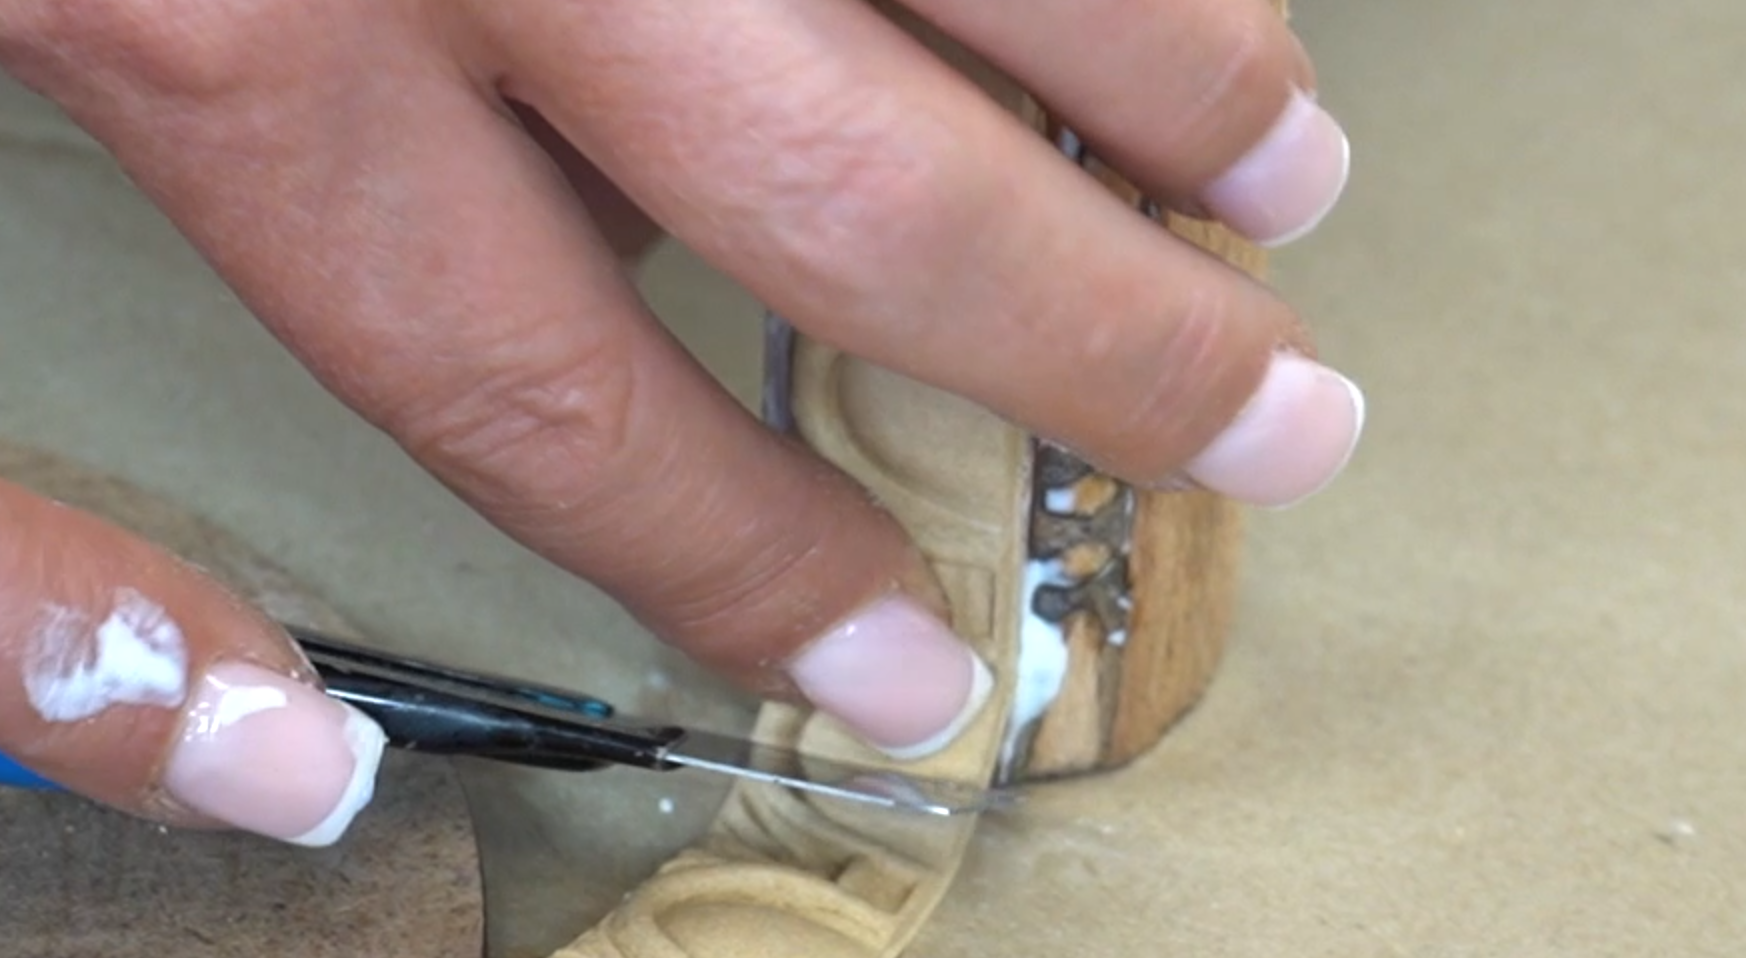 A close up of a WoodUbend trim being sliced with a craft knife